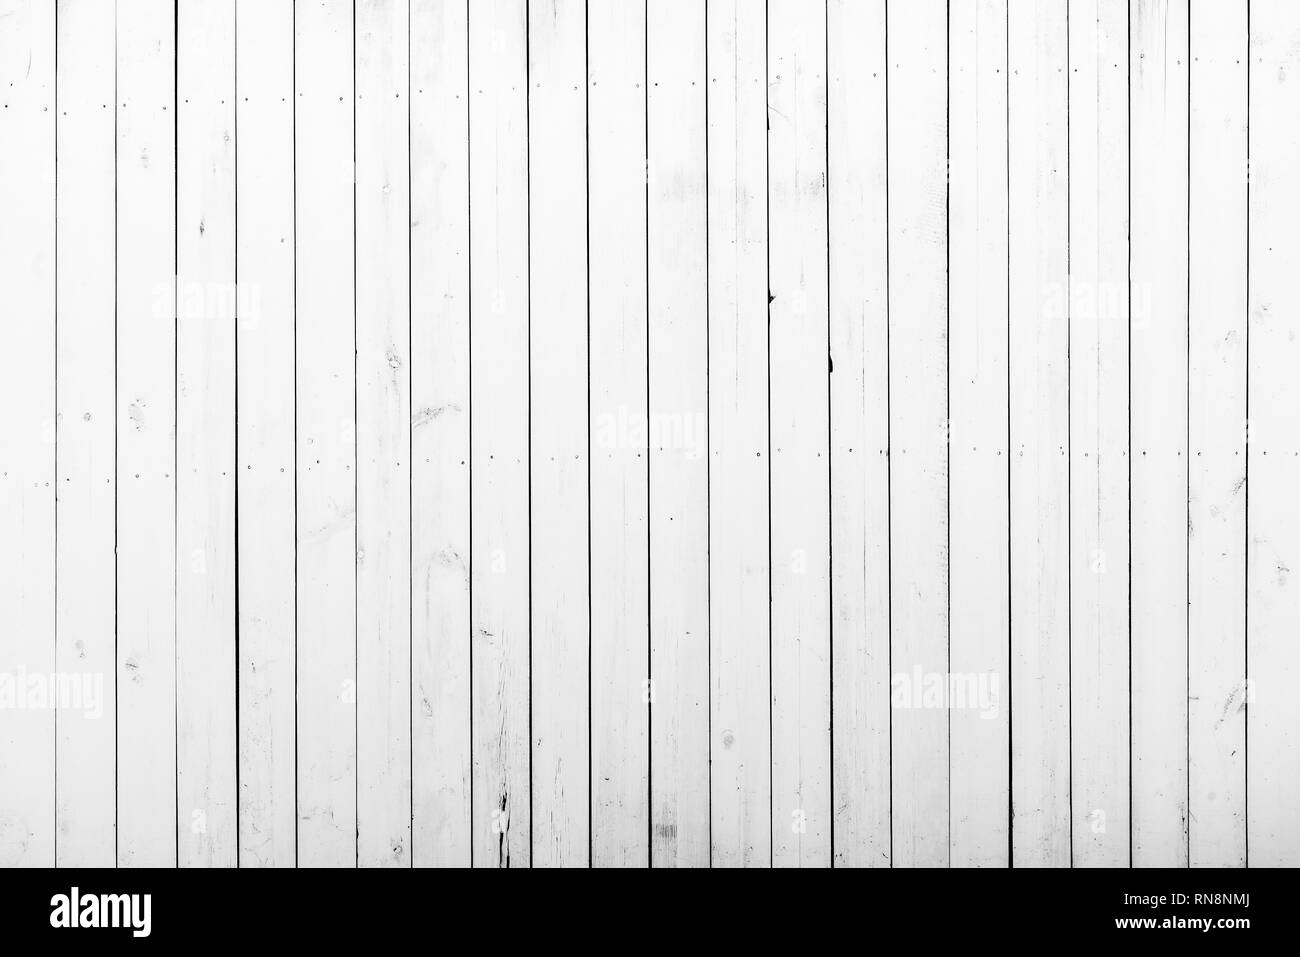 White wooden wall with a lot of cracks, knots and nails. Weathered timber planks, messy and dust, background with rich texture - Stock Image